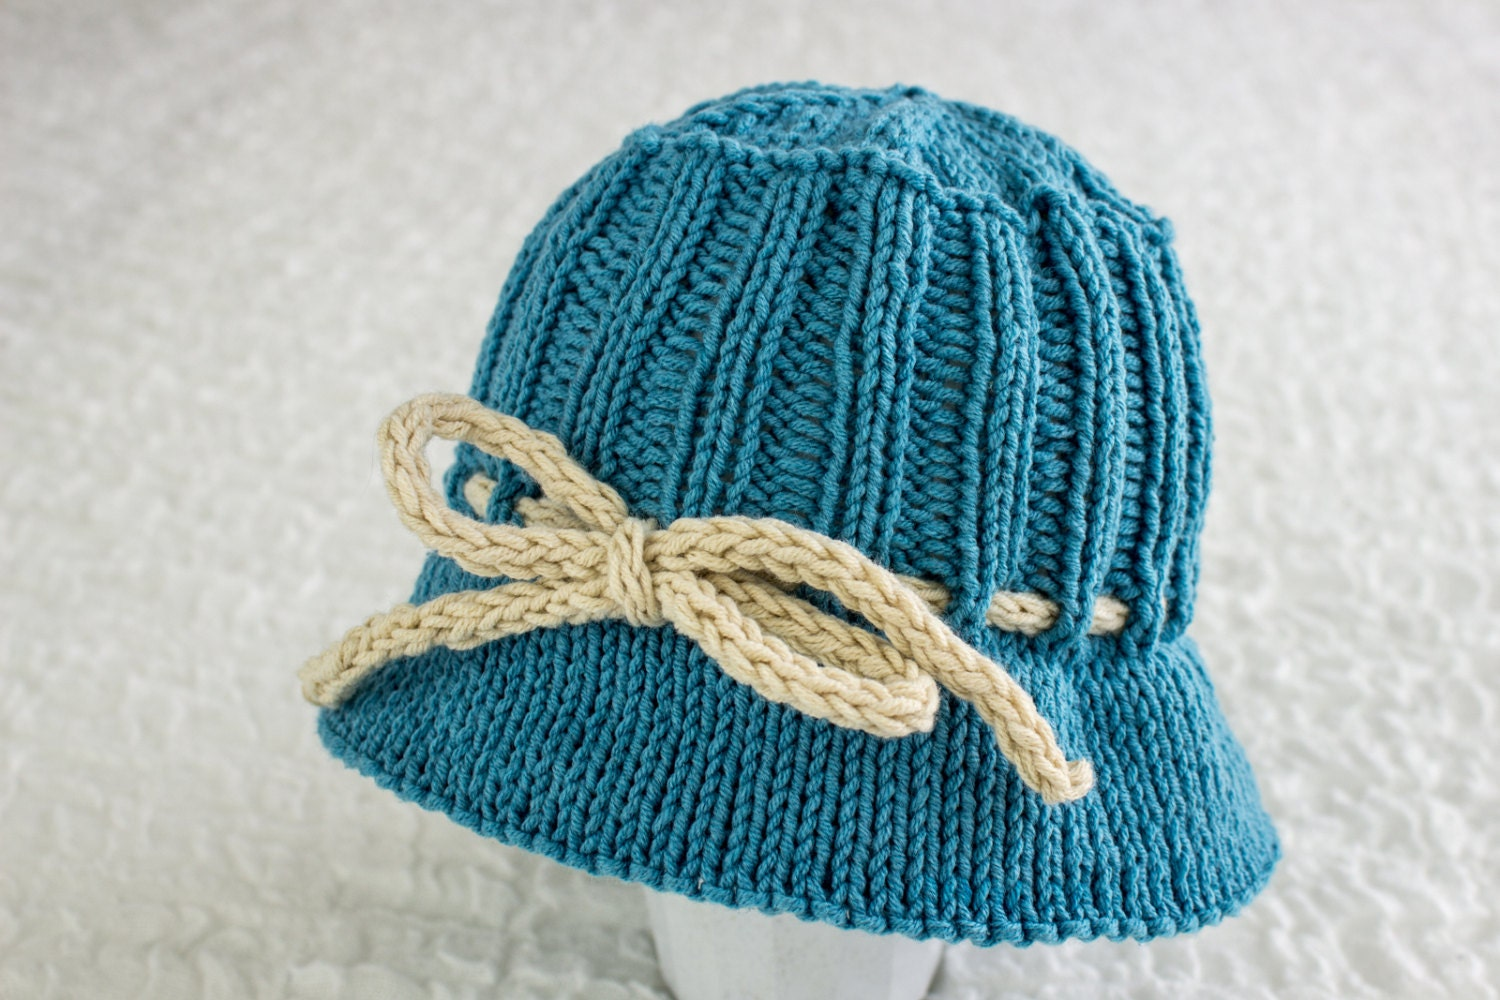 Knit Hat Pattern Free Brim : KNITTING PATTERN Baby Summer Hat Brimmed Hat Knitting